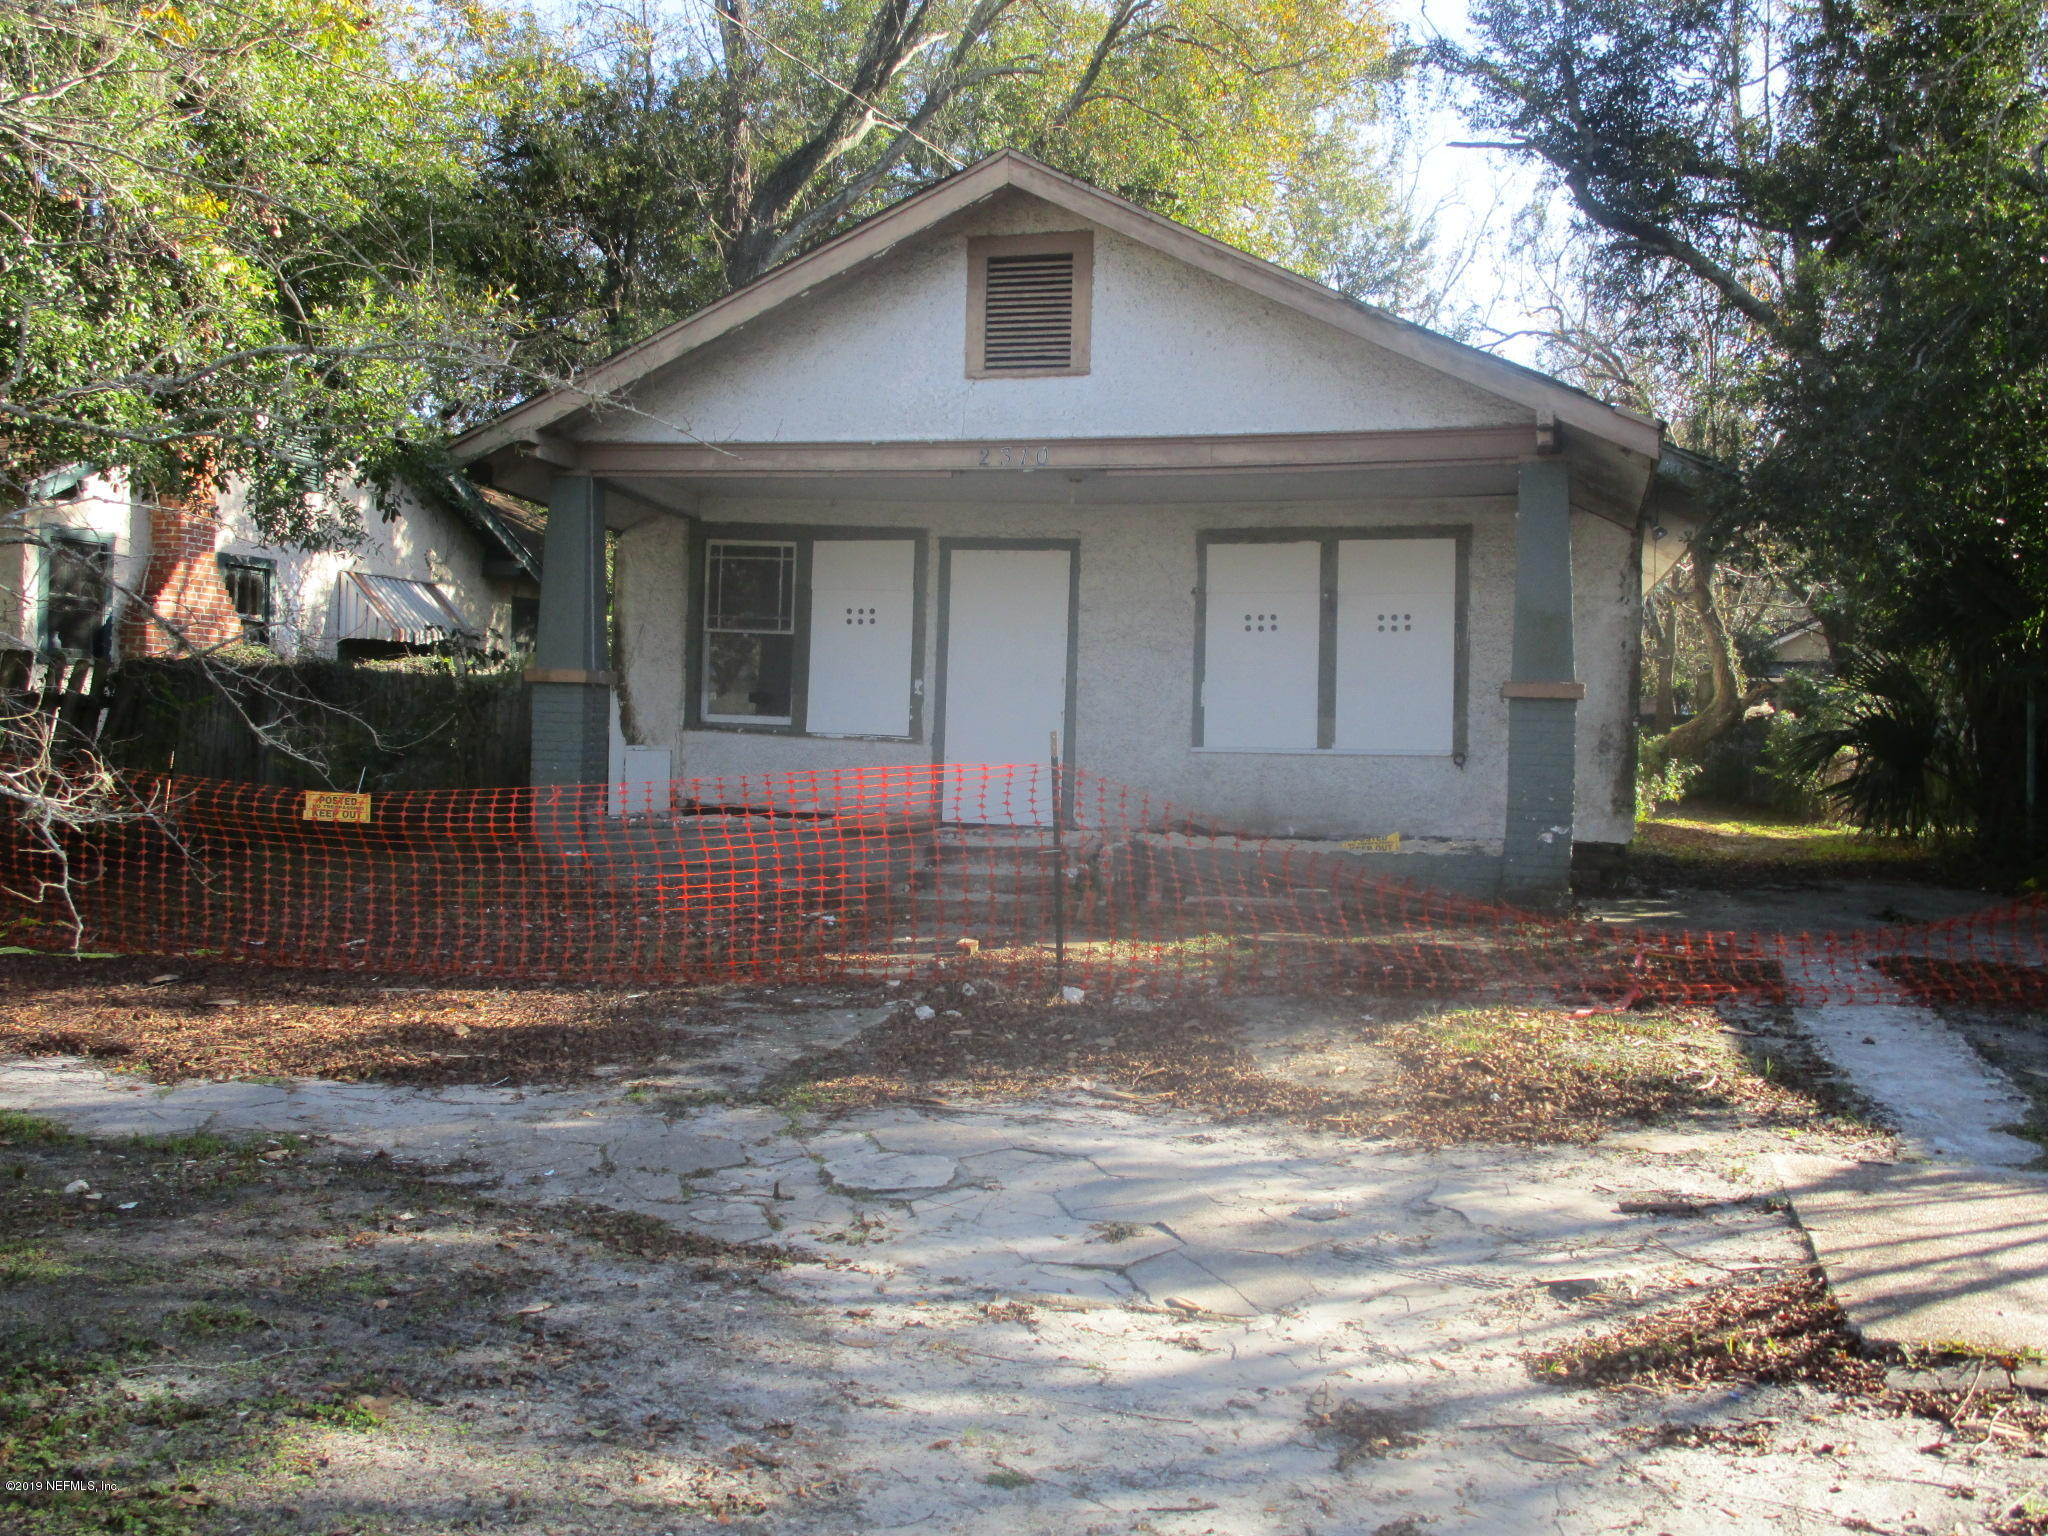 2310 GILMORE, JACKSONVILLE, FLORIDA 32204, 3 Bedrooms Bedrooms, ,1 BathroomBathrooms,Residential - single family,For sale,GILMORE,976631